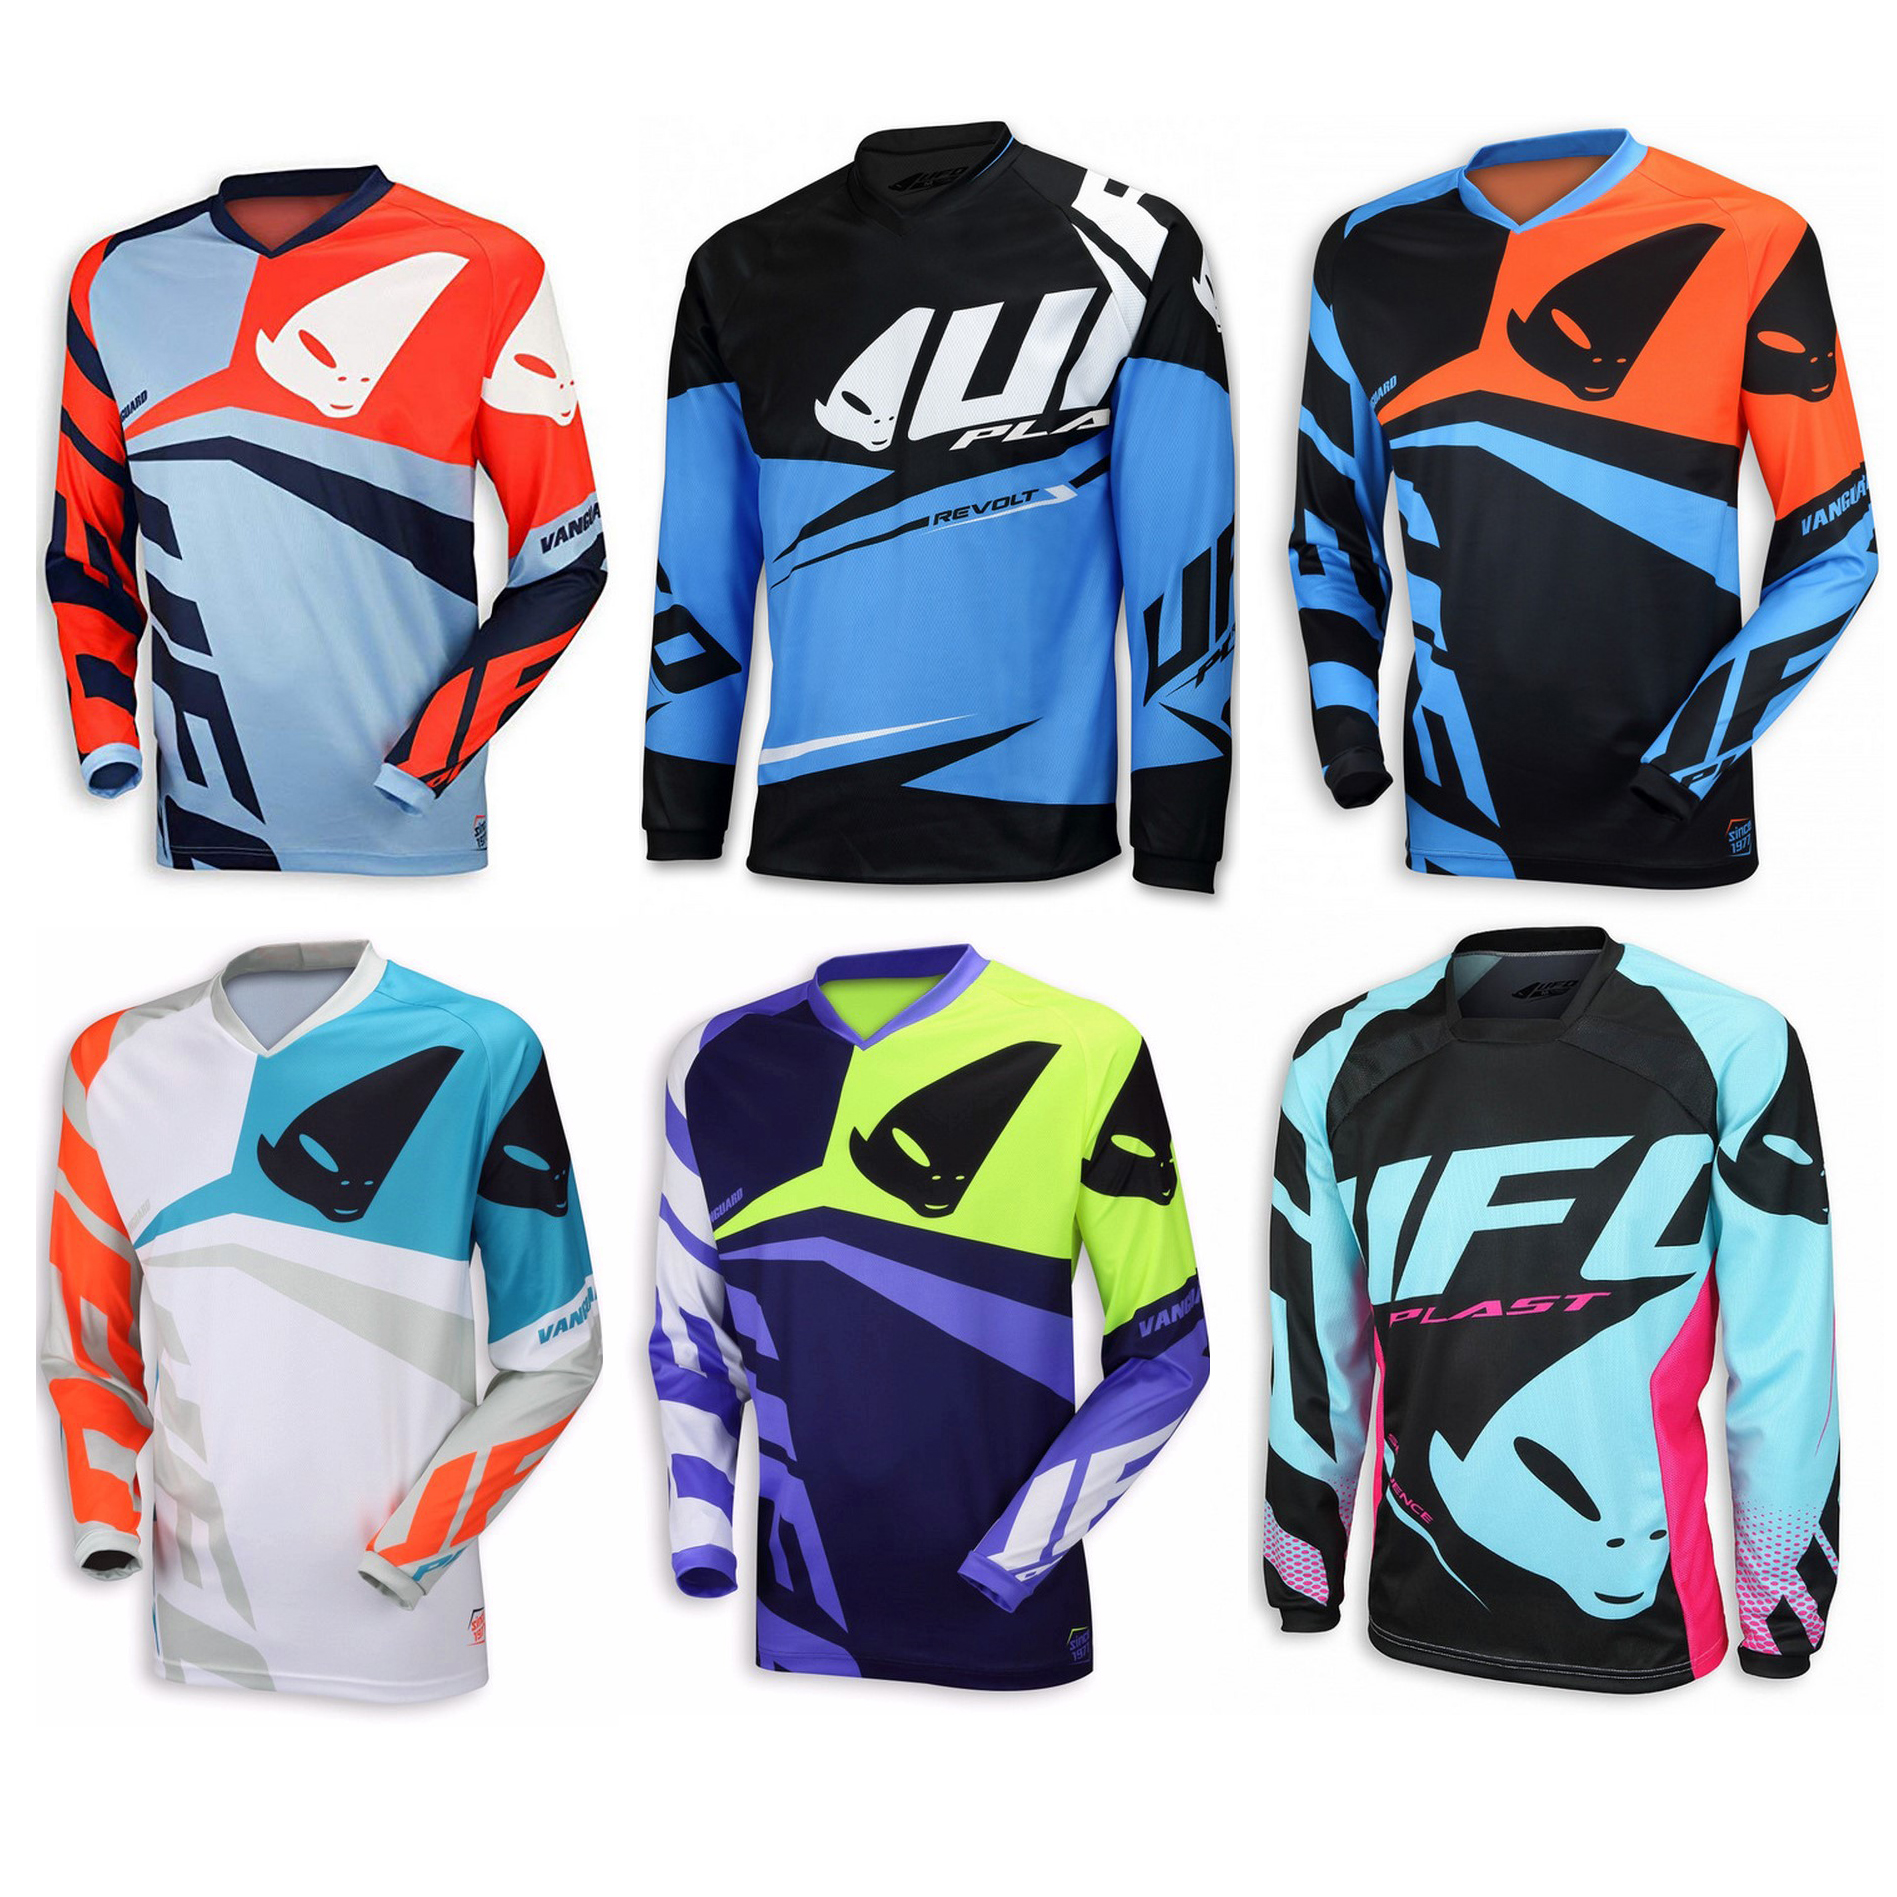 Bike Jerseys Mtb-Offroad Mtb t-Shirt Motorcycle Enduro Jeresy Racing-Riding DH Long  title=